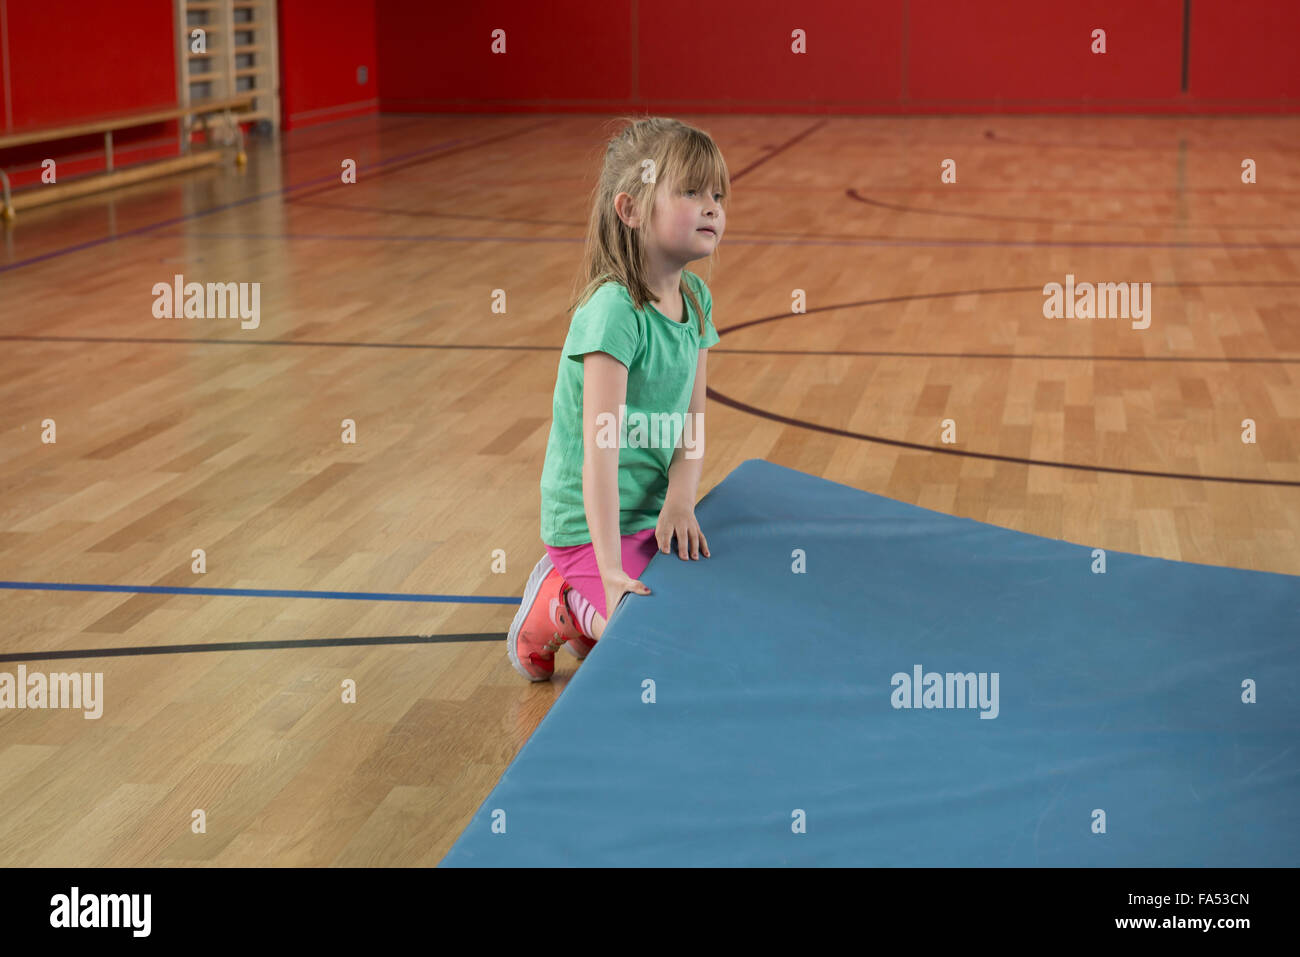 Girl trying to lift up heavy exercise mat in basketball court of sports hall, Munich, Bavaria, Germany - Stock Image